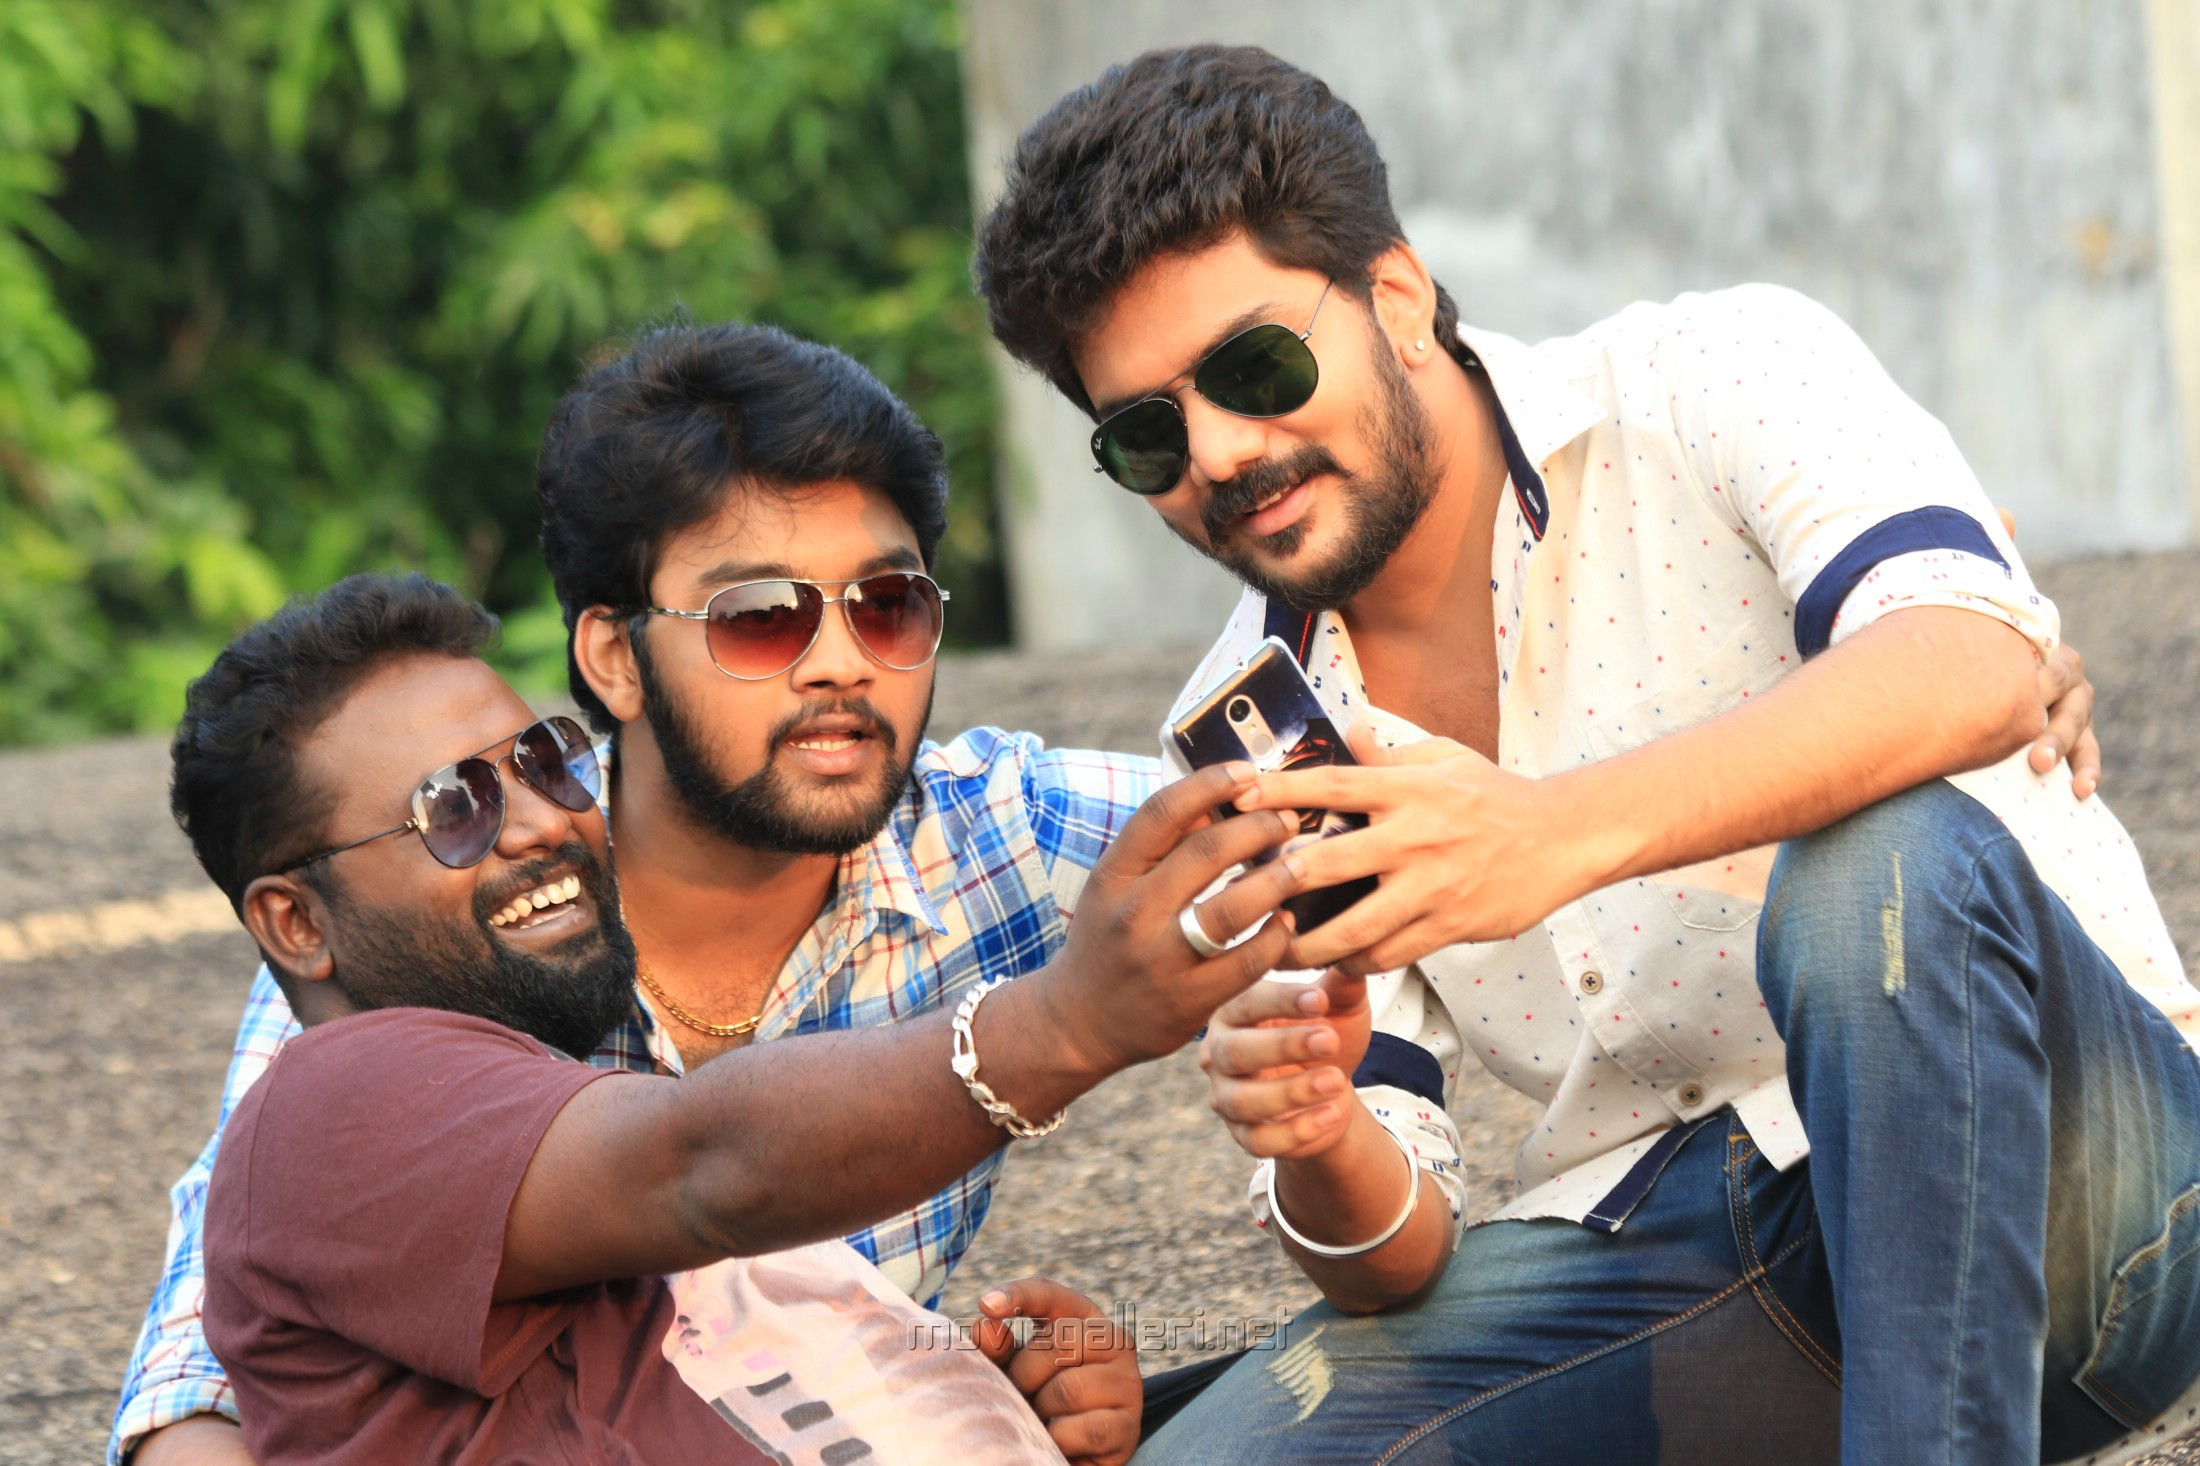 Arunraja Kamaraj, Raju, Kavin in Natpuna Ennanu Theriyuma Movie Stills HD